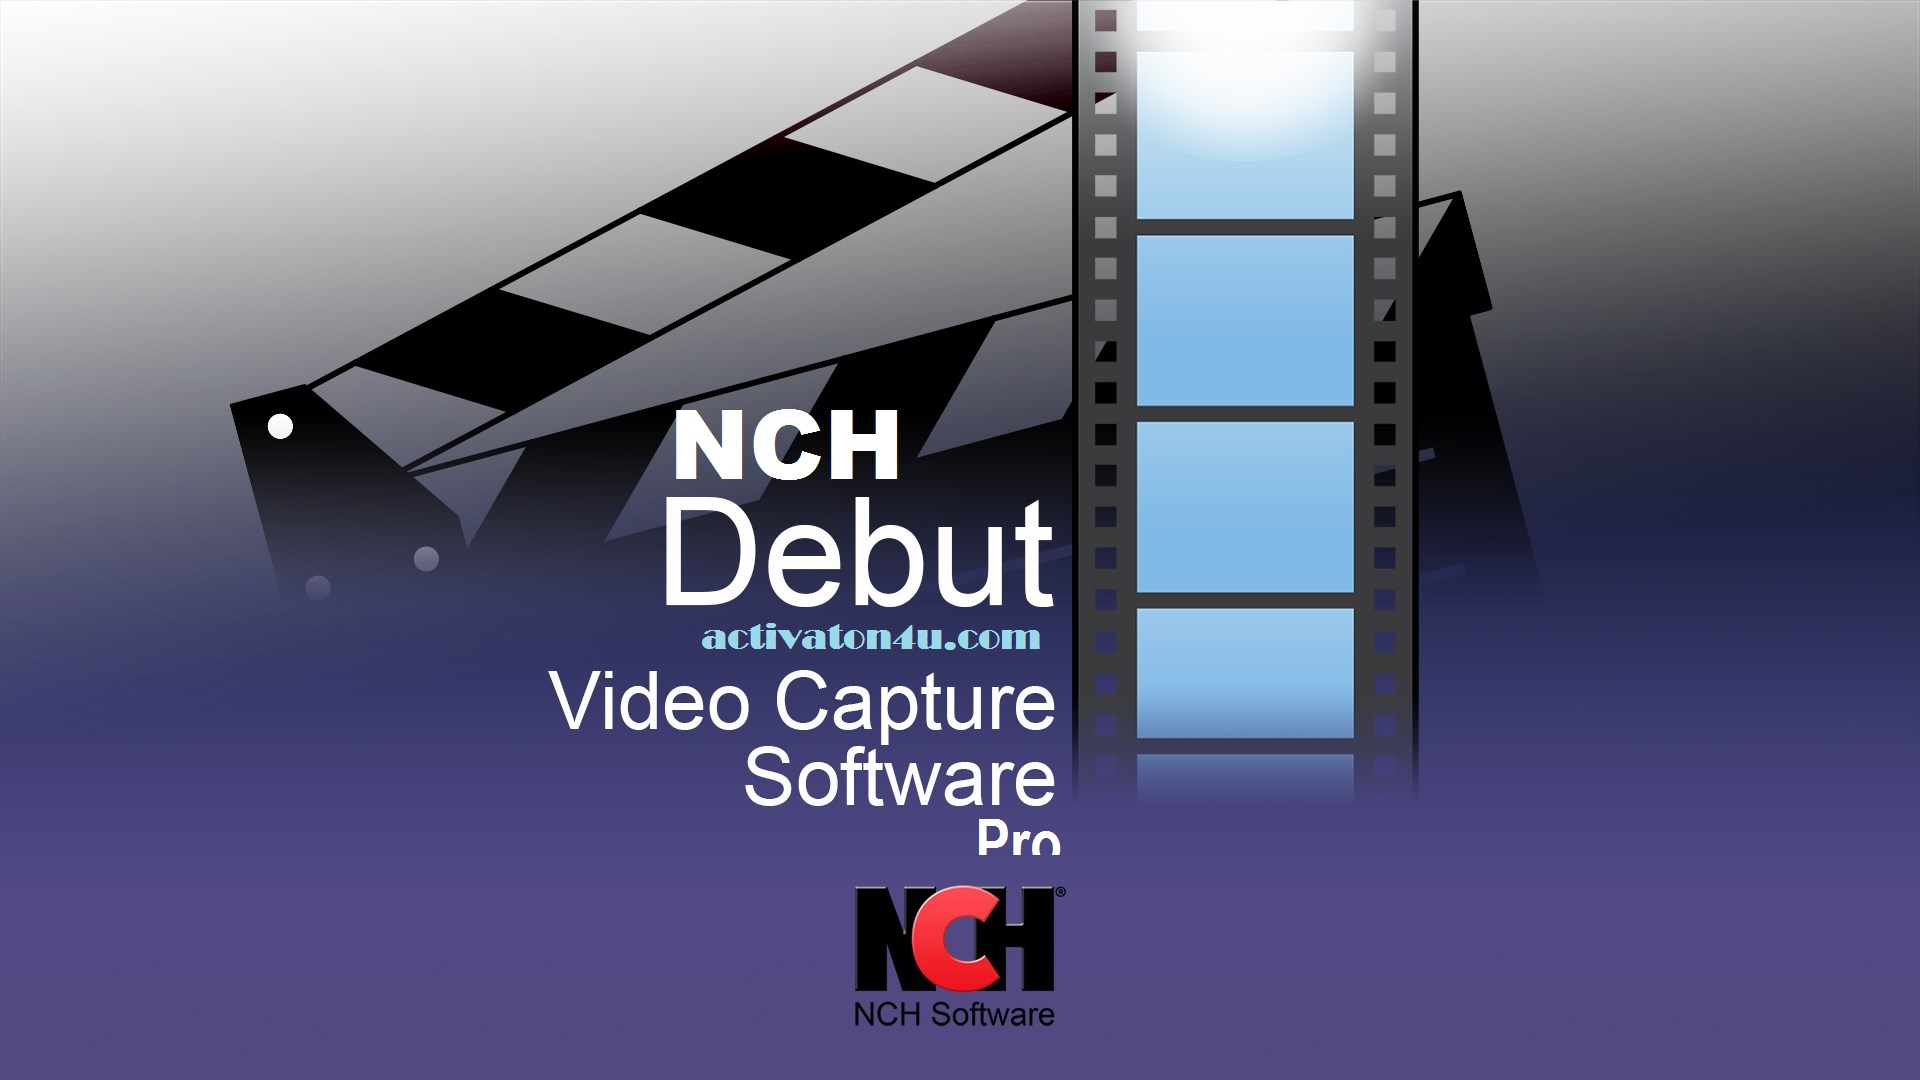 NCH Debut Video Capture Software Pro 6.22 Crack Free Download